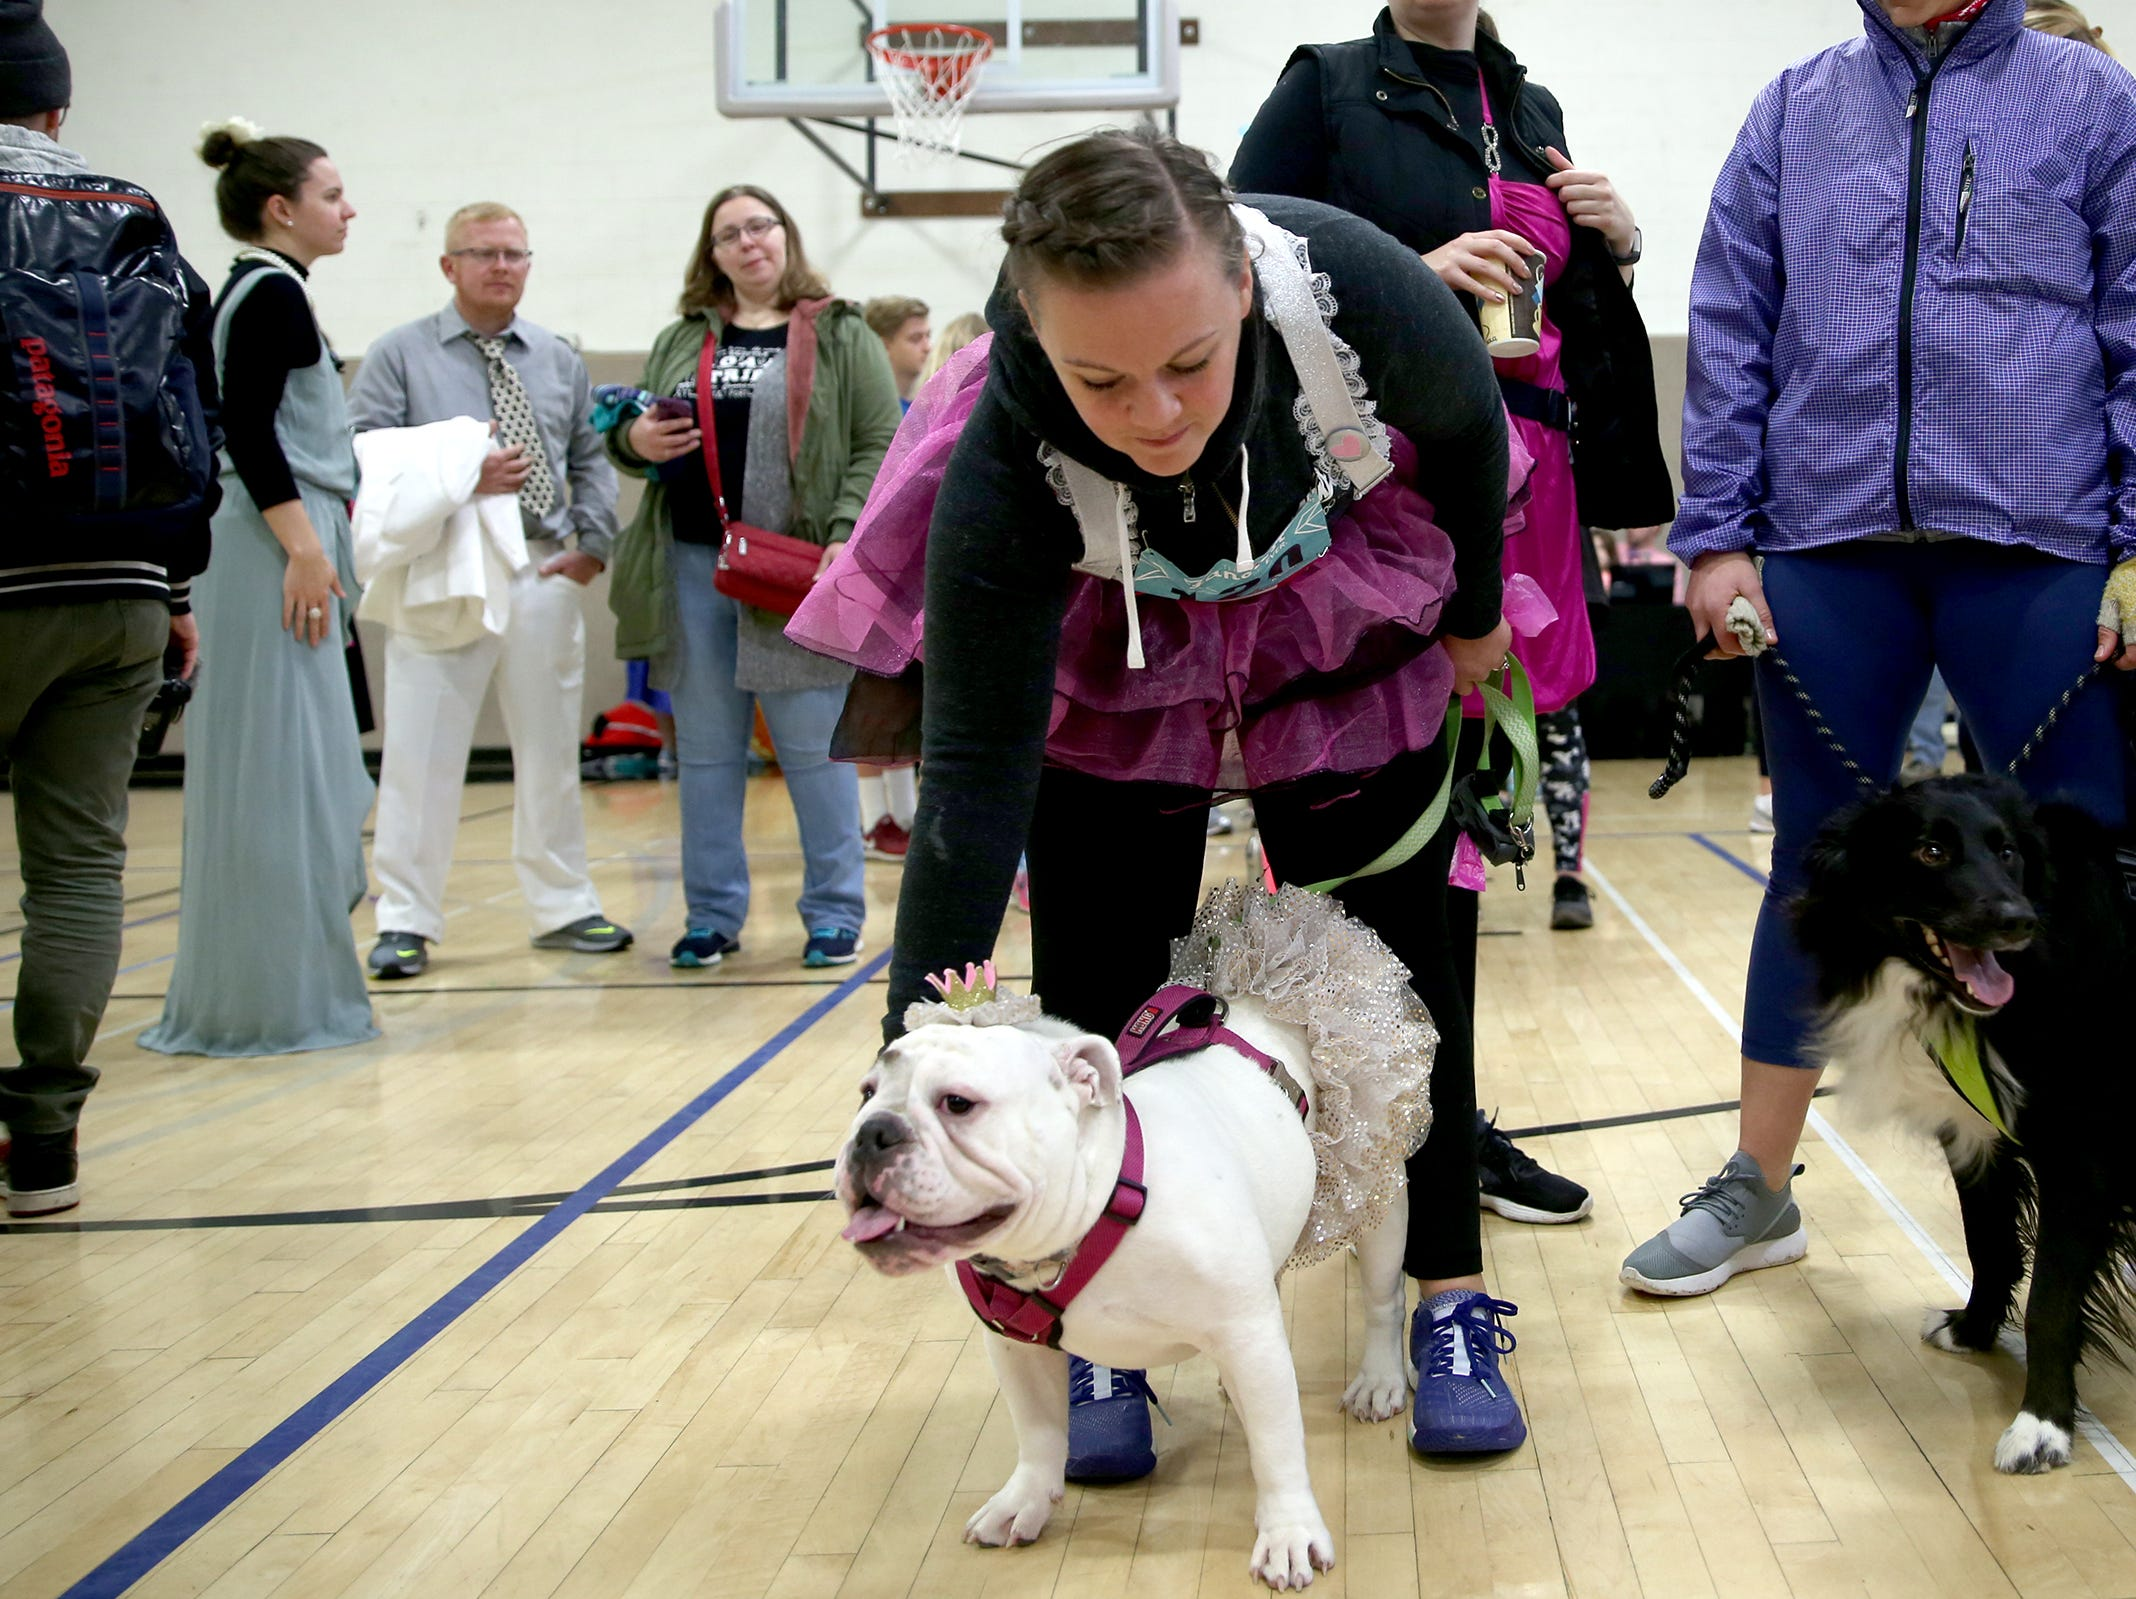 Teresa Owens and her dog Maddie before The Fanciest 5K. Ever. in Salem on Saturday, Dec. 29. All of the money raised will go directly to advocacy for sex-trafficking survivors in the mid-Willamette Valley.